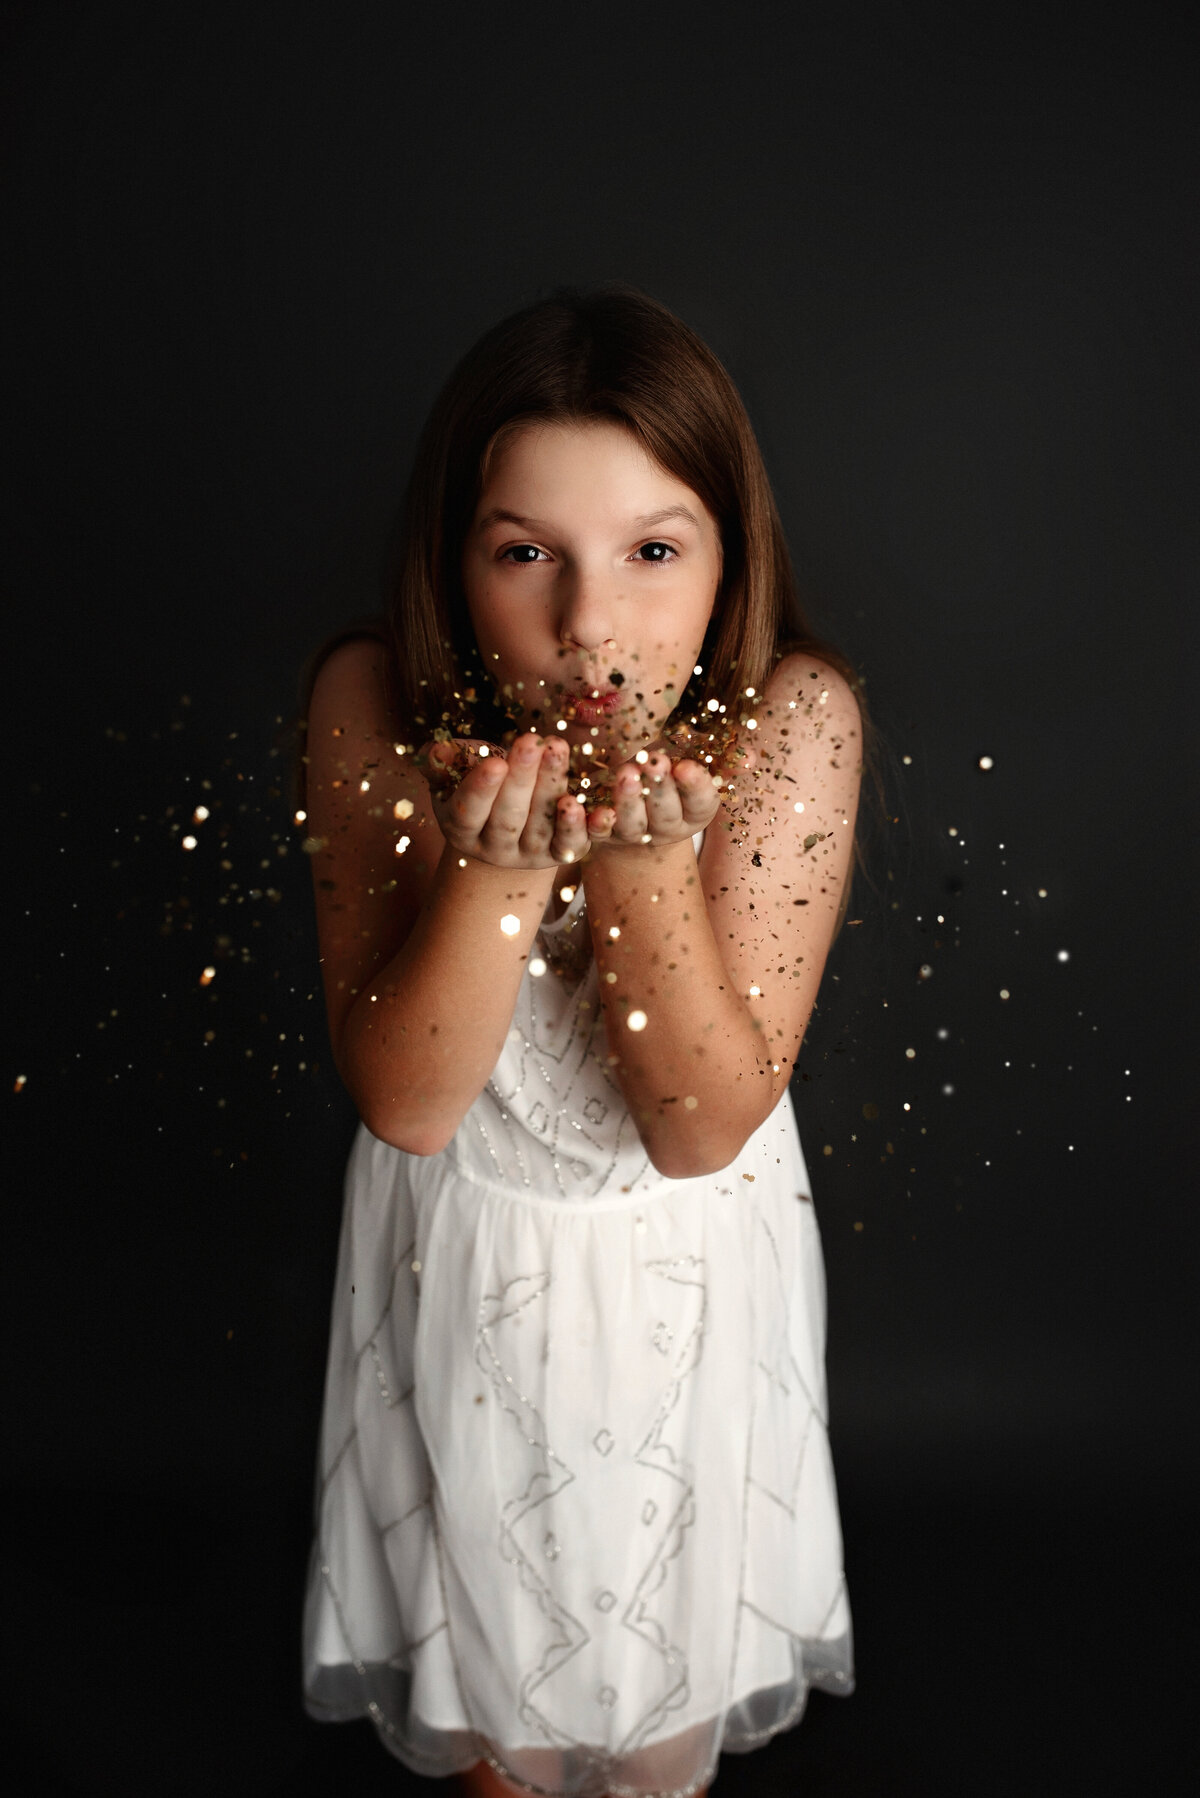 young girl blowing glitter